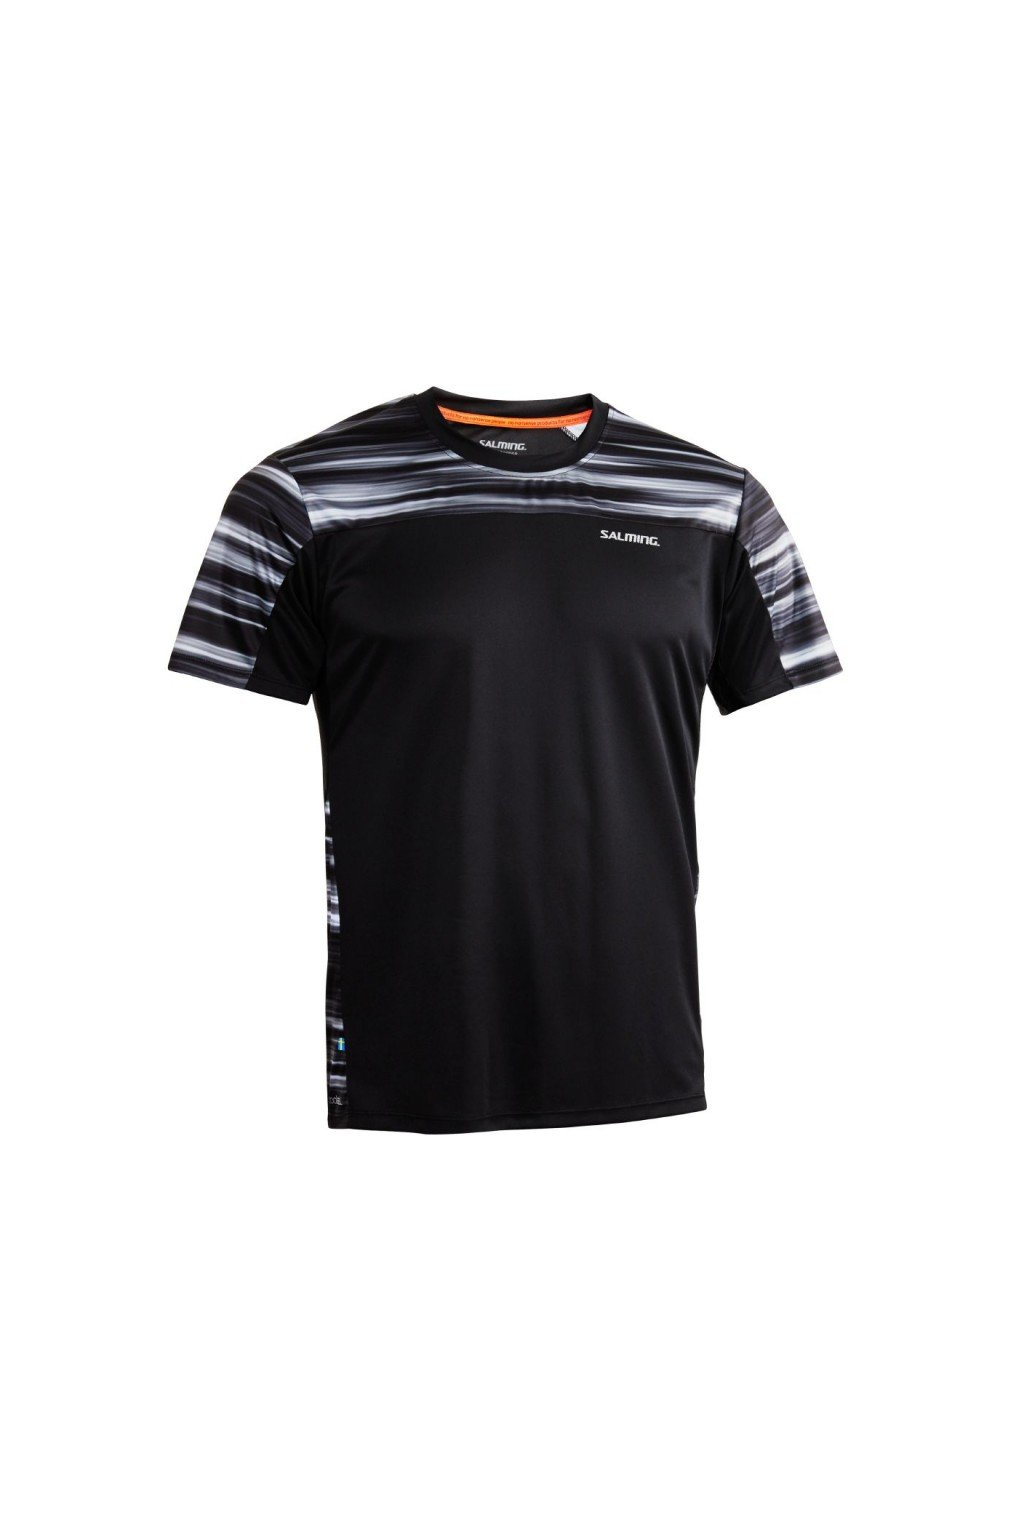 salming motion tee men black xxl